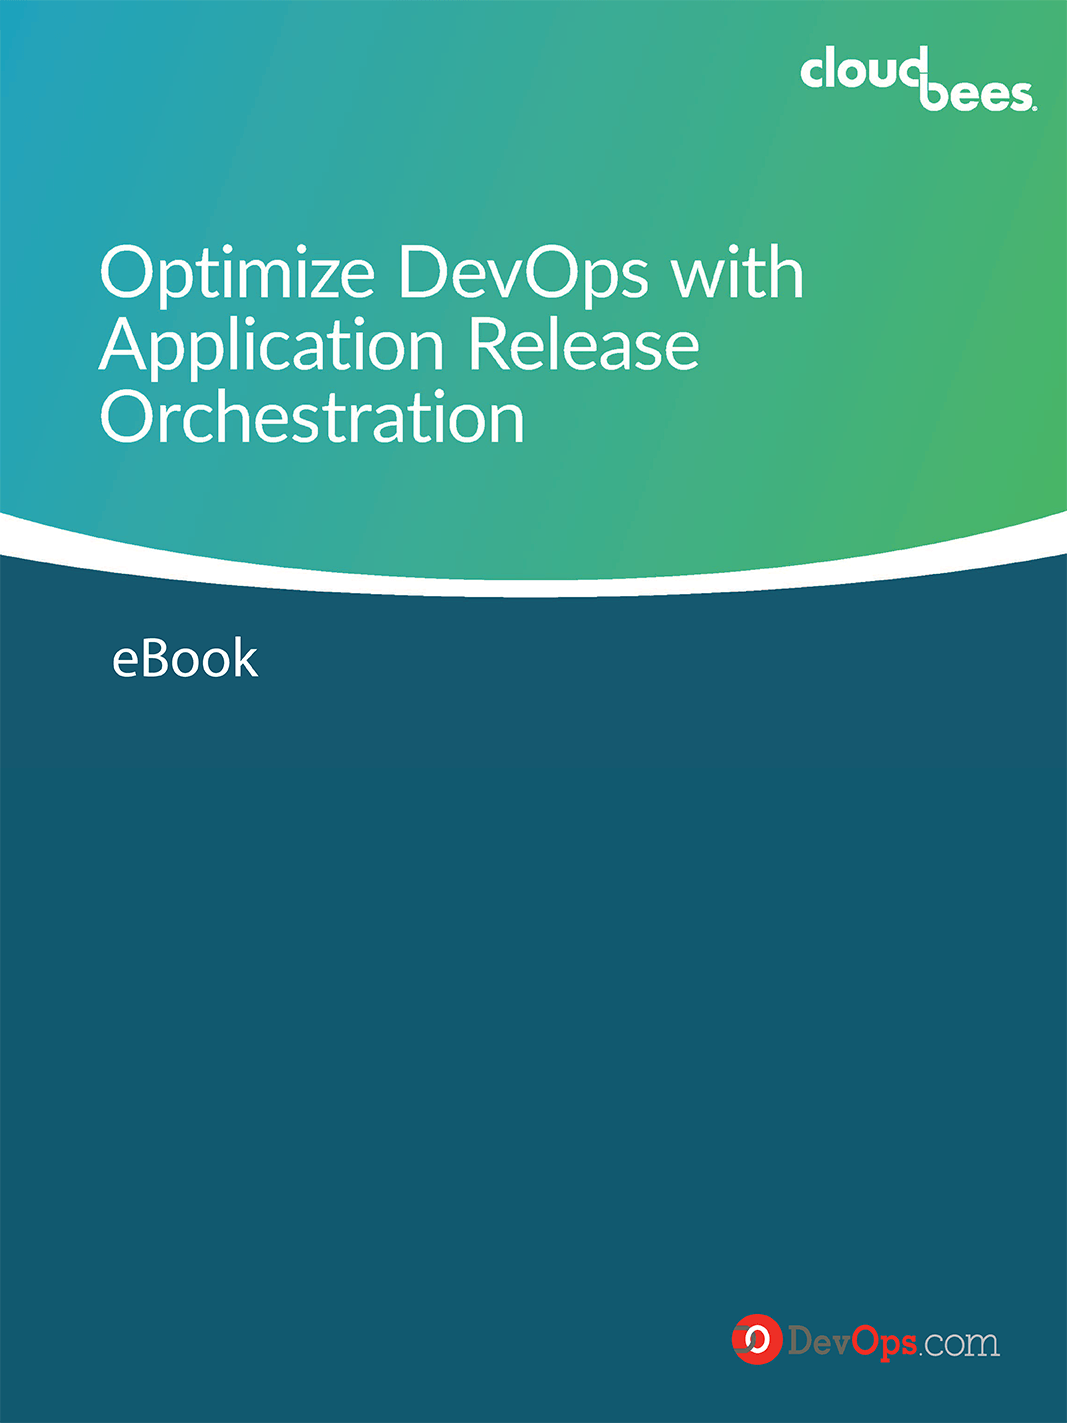 Optimize DevOps with Application Release Orchestration